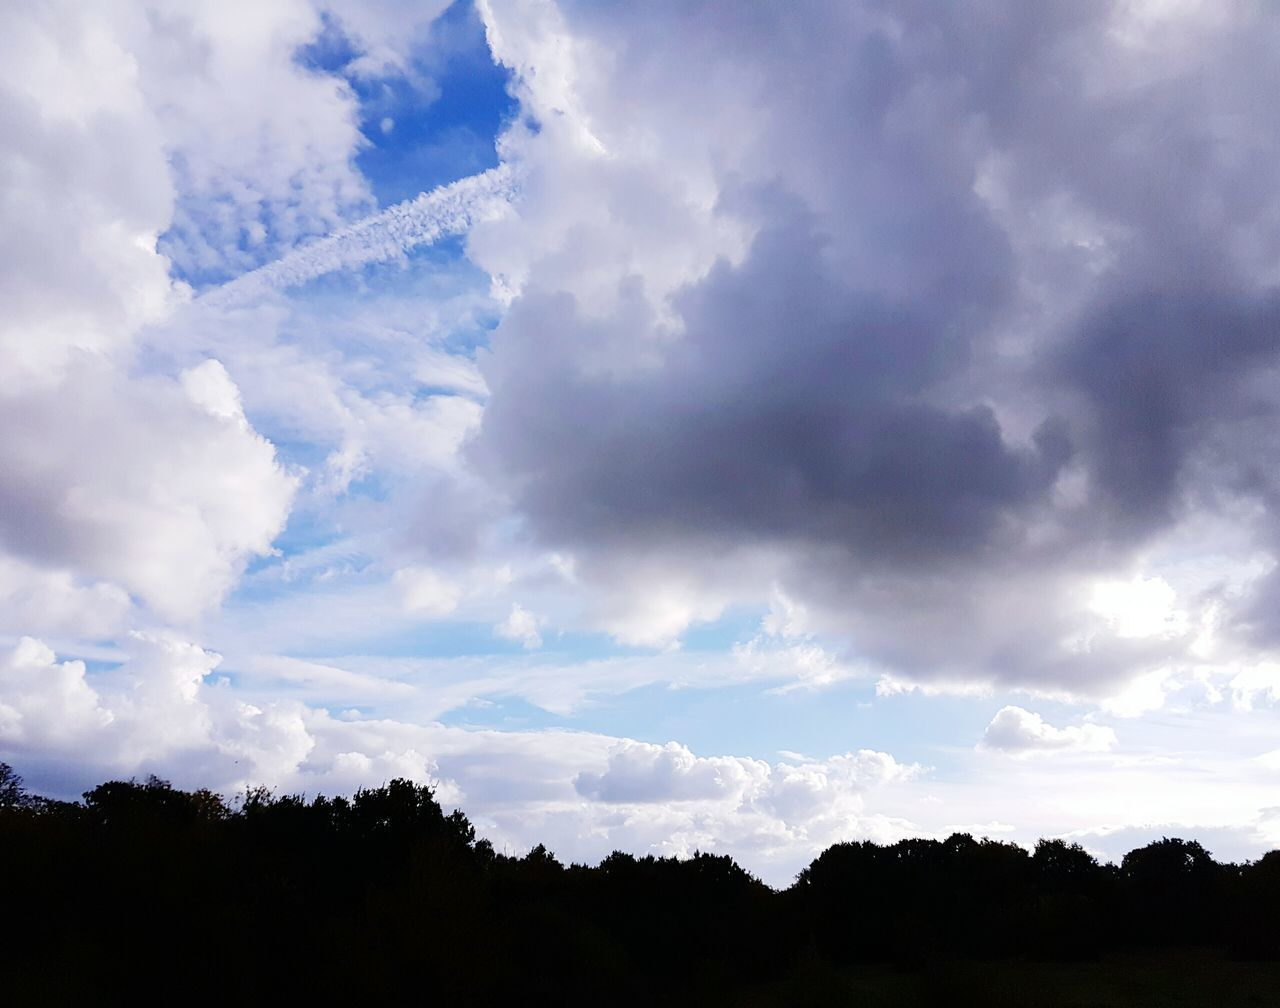 sky, nature, cloud - sky, silhouette, beauty in nature, scenics, tree, tranquility, outdoors, no people, day, tranquil scene